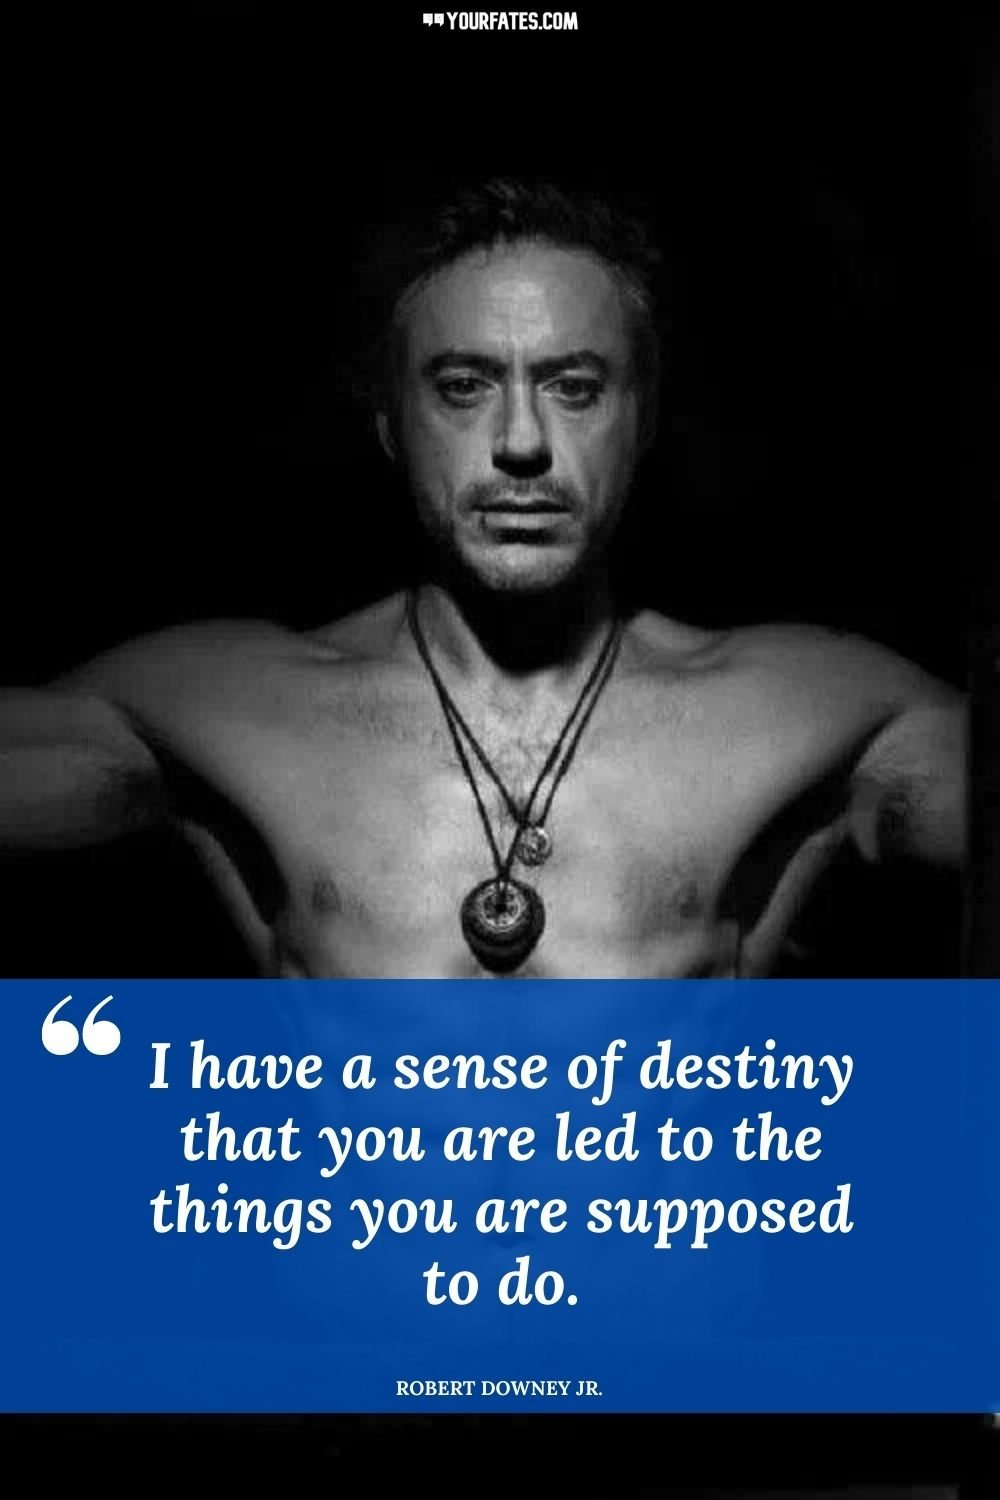 quotes about robert downey jr.